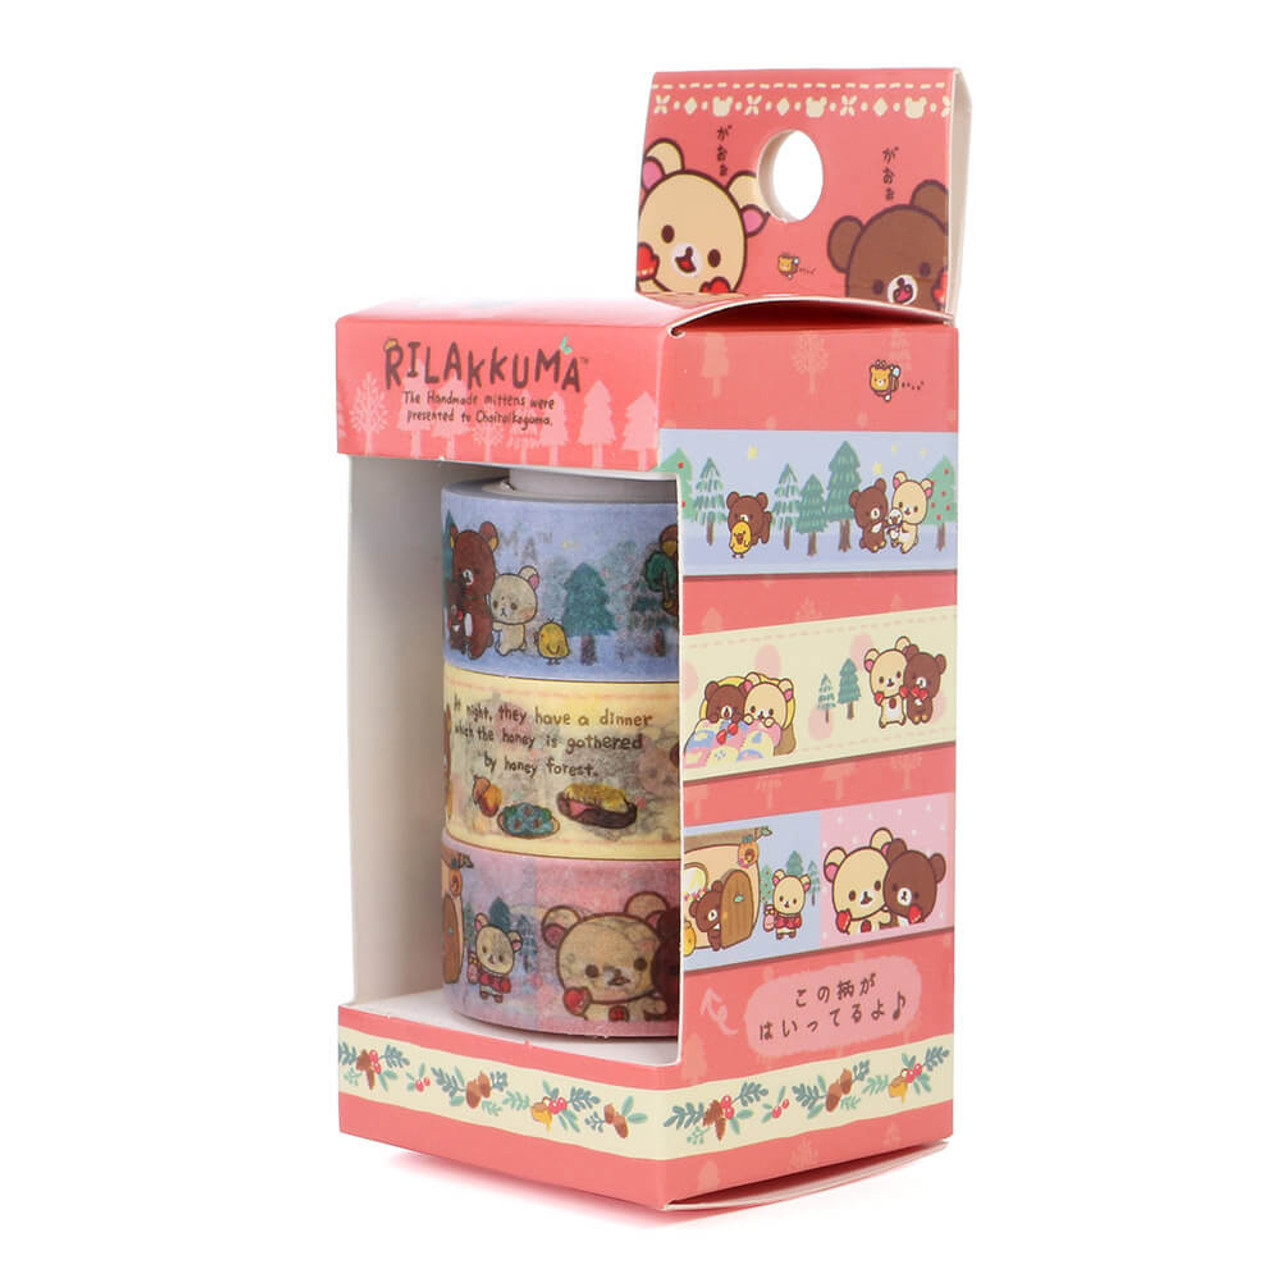 Rilakkuma Handmade Mittens Washi Tape - SE30801 ( Packing 02 )